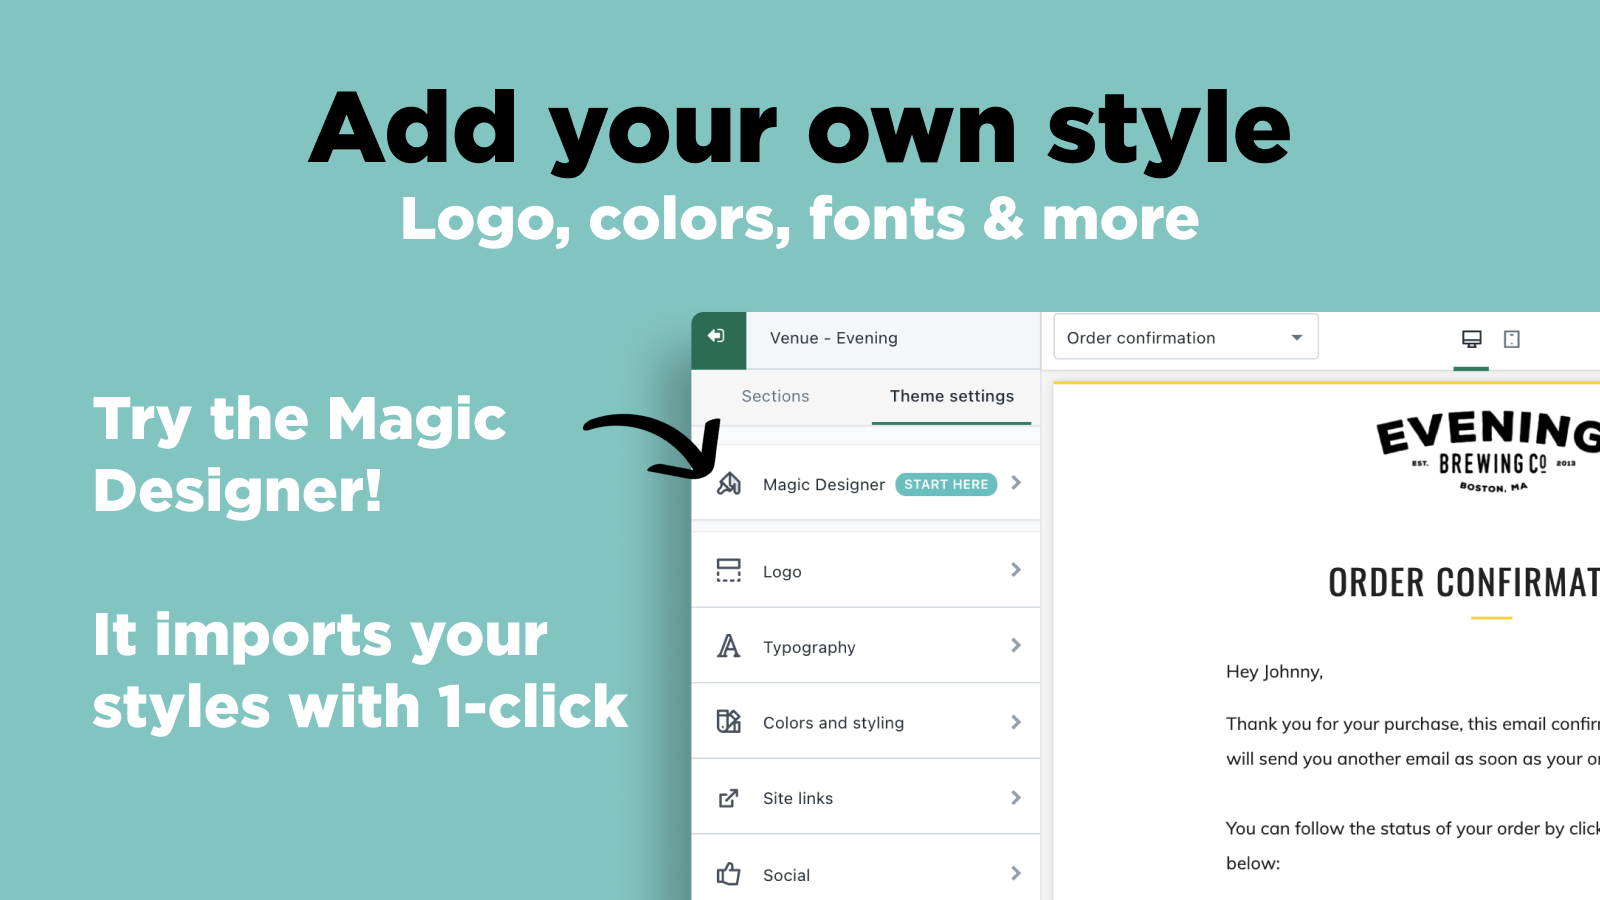 OrderlyEmails: Add your own styles. Logo, colors, fonts & more